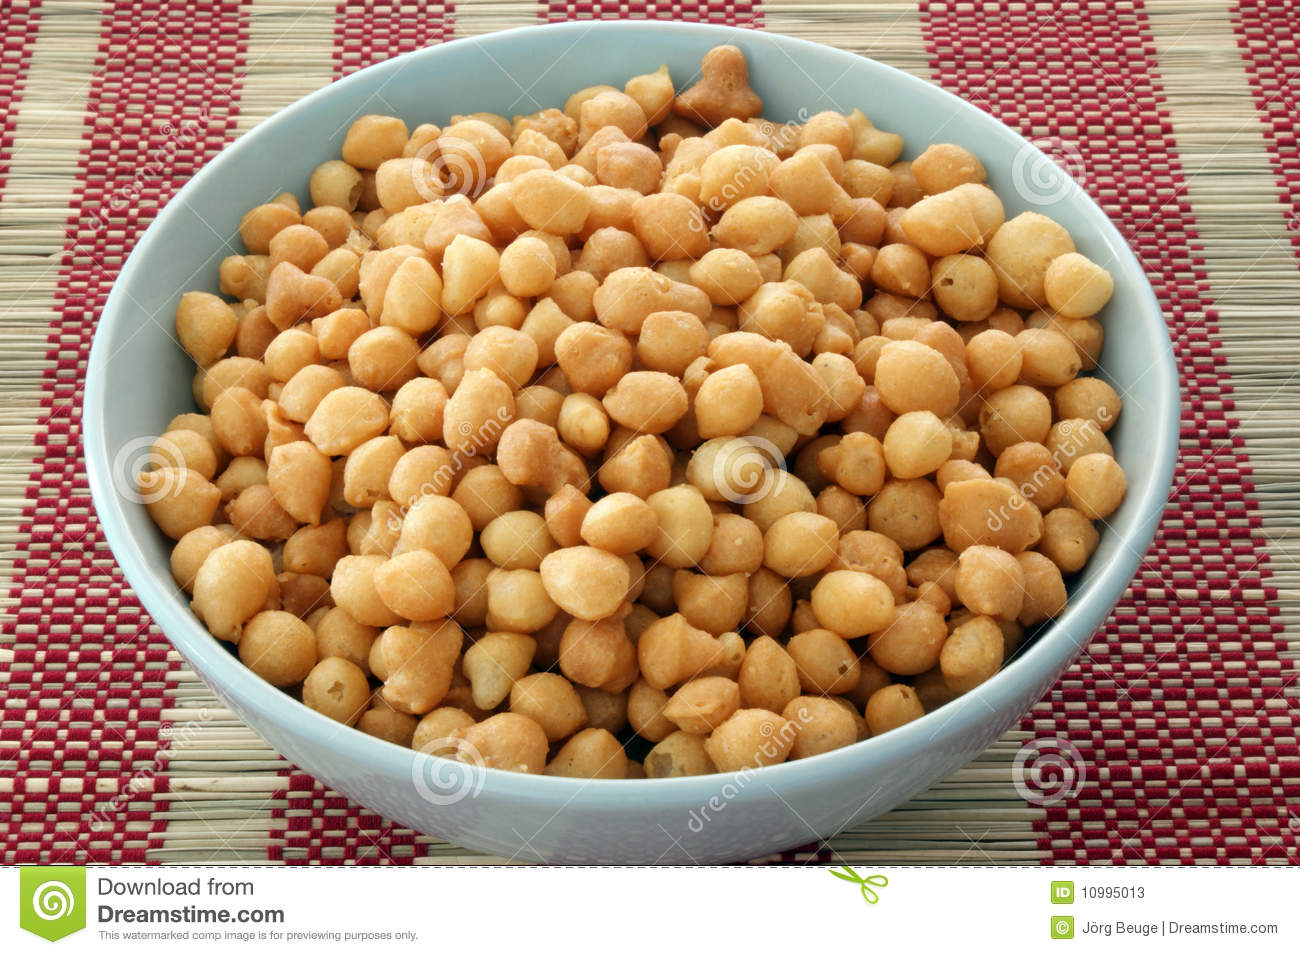 Fried batter pearls in a bowl stock photos image 10995013 for Fish batter bowl